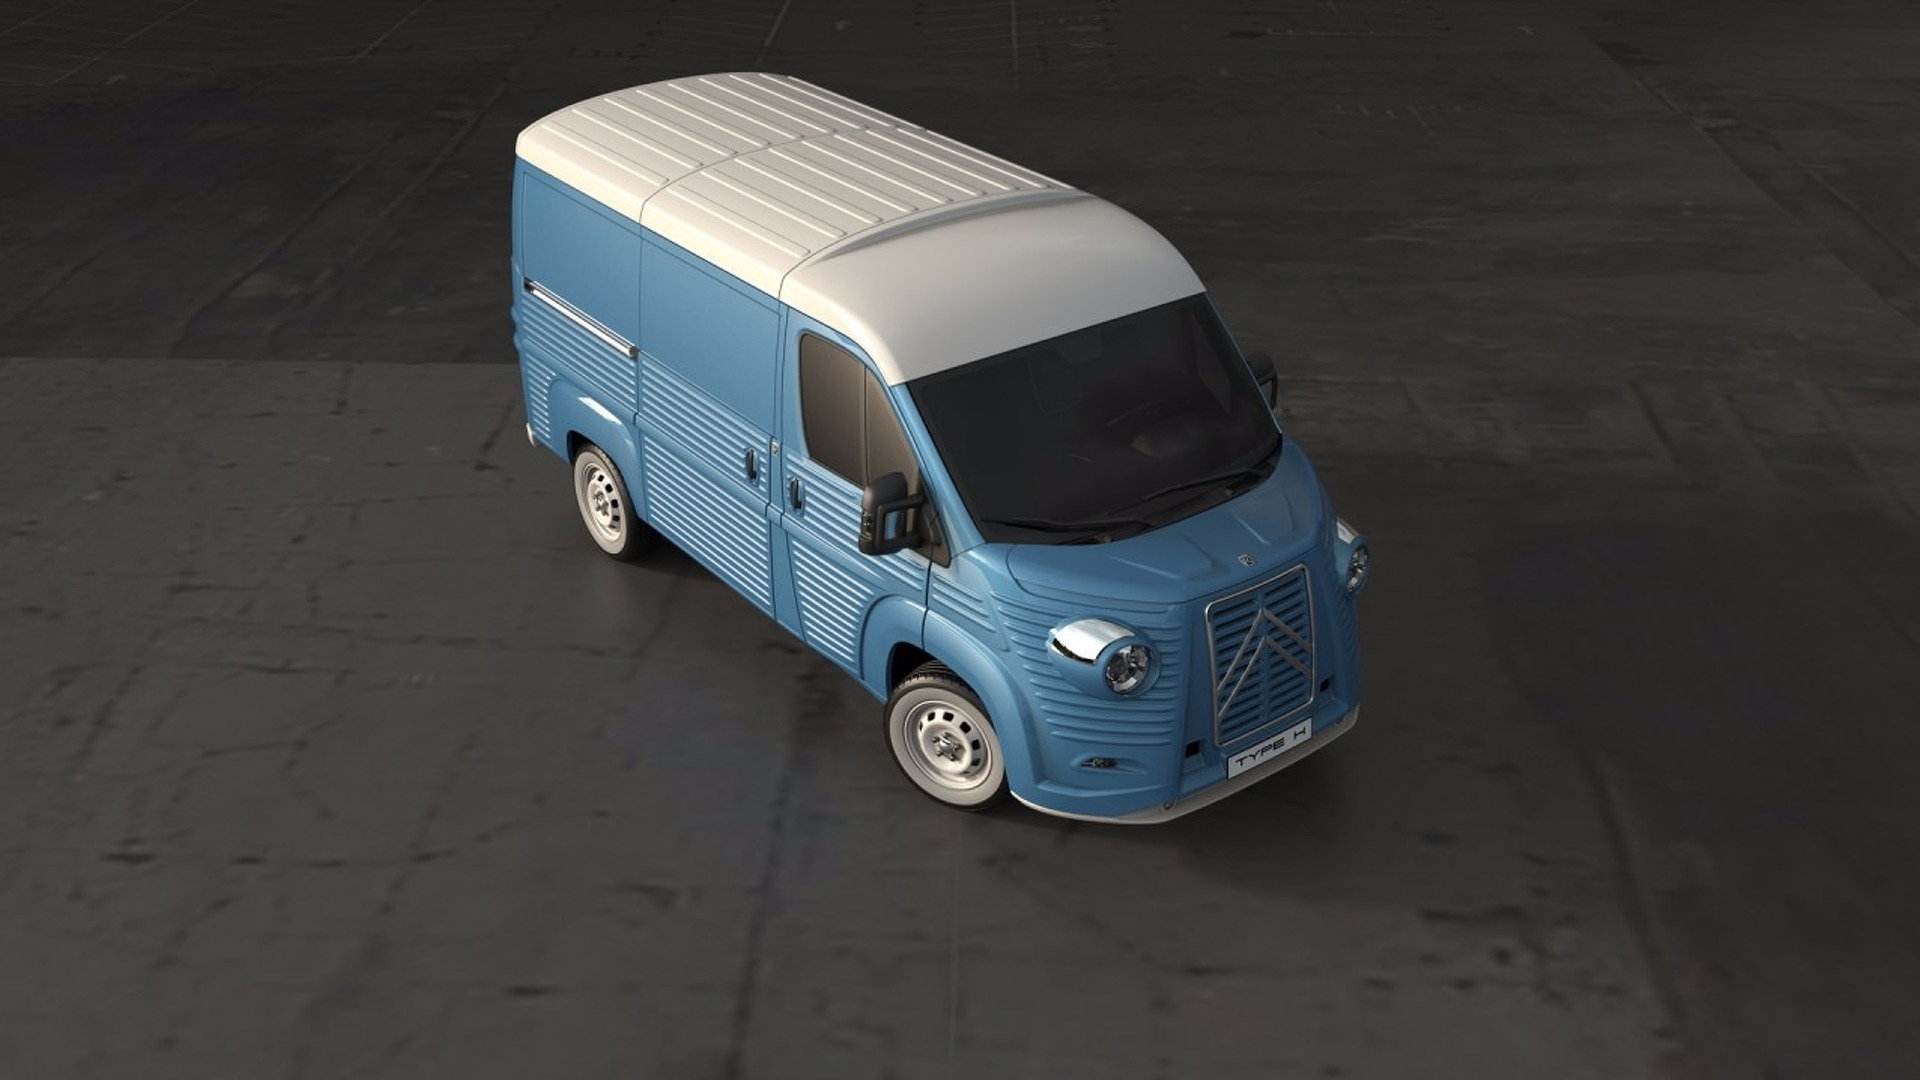 [KIT CARROSSERIE] Type H 70th Anniversary van S0-citroen-transformez-votre-jumper-en-type-h-neo-retro-400281